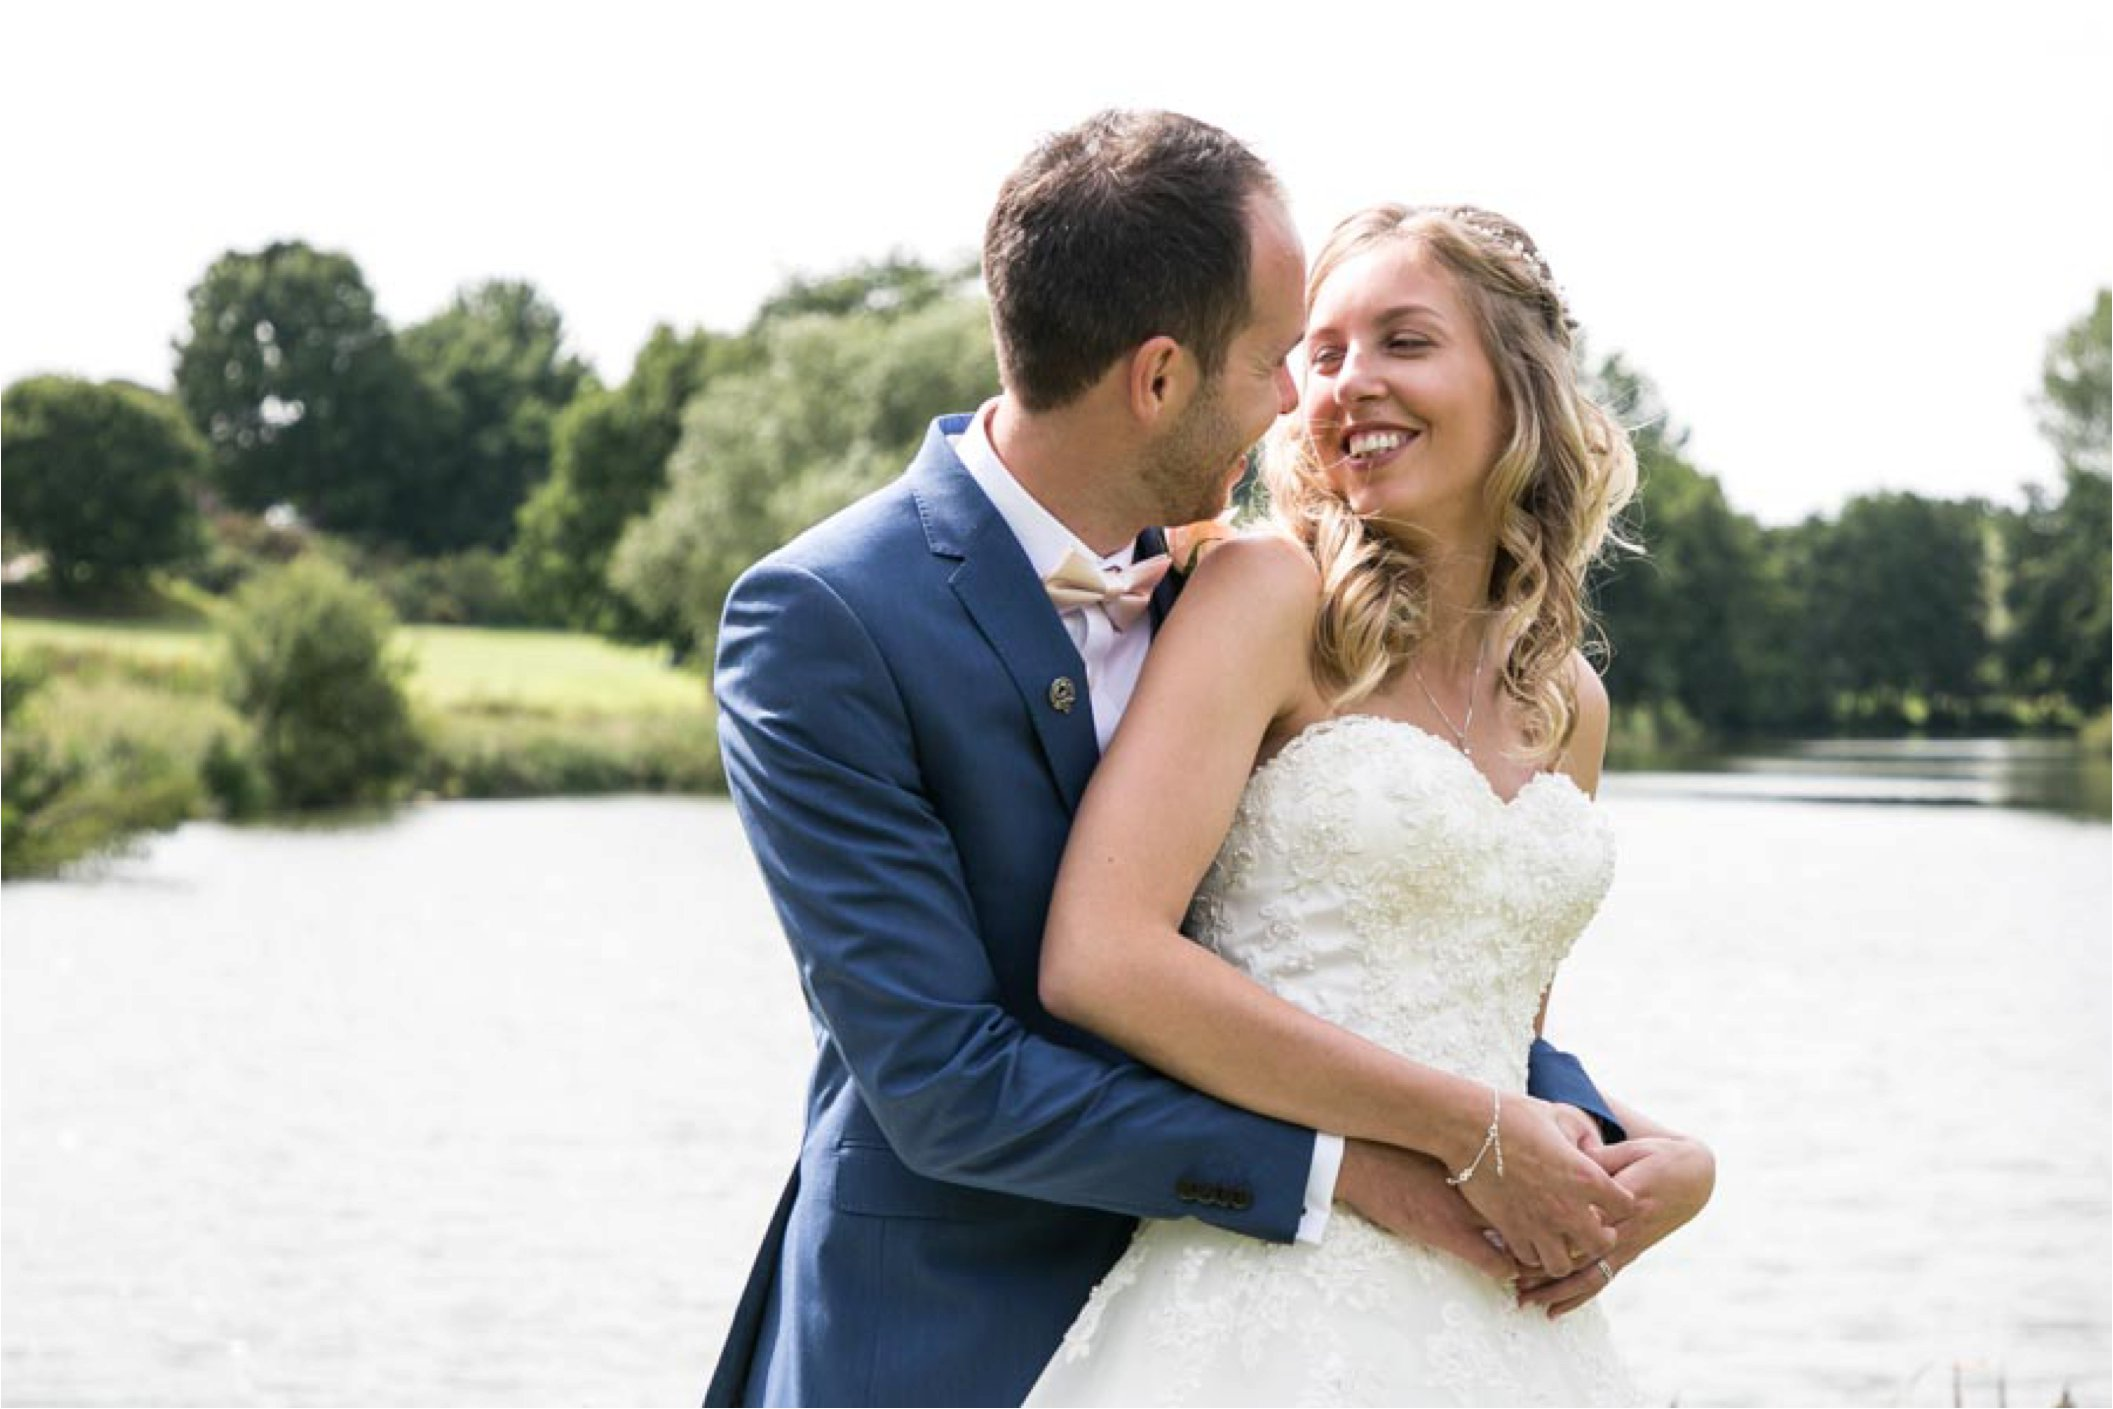 couples photos by the lake at stoke by nayland wedding